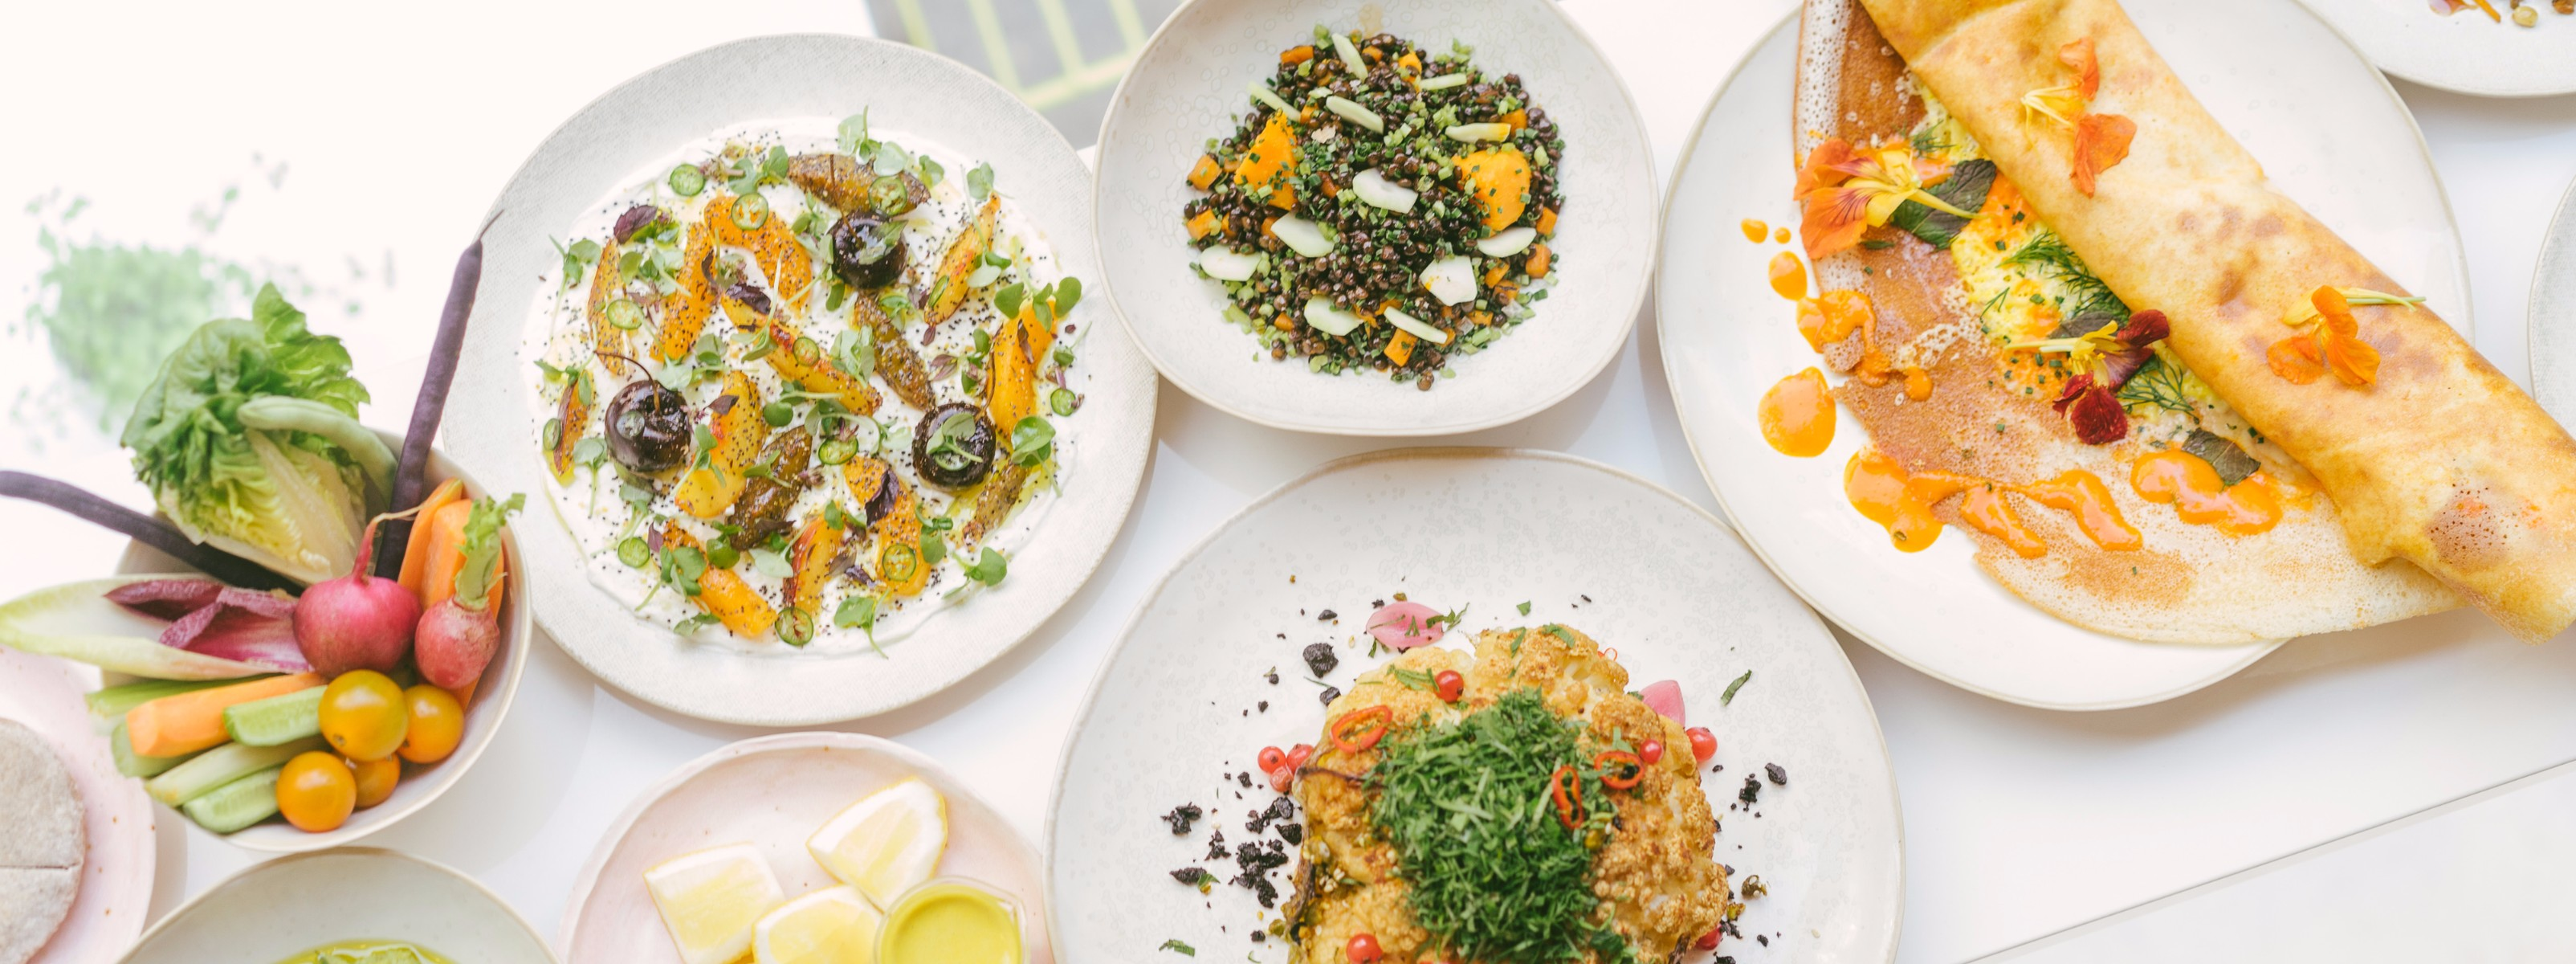 The Best Places To Eat Vegetarian Food In NYC - New York